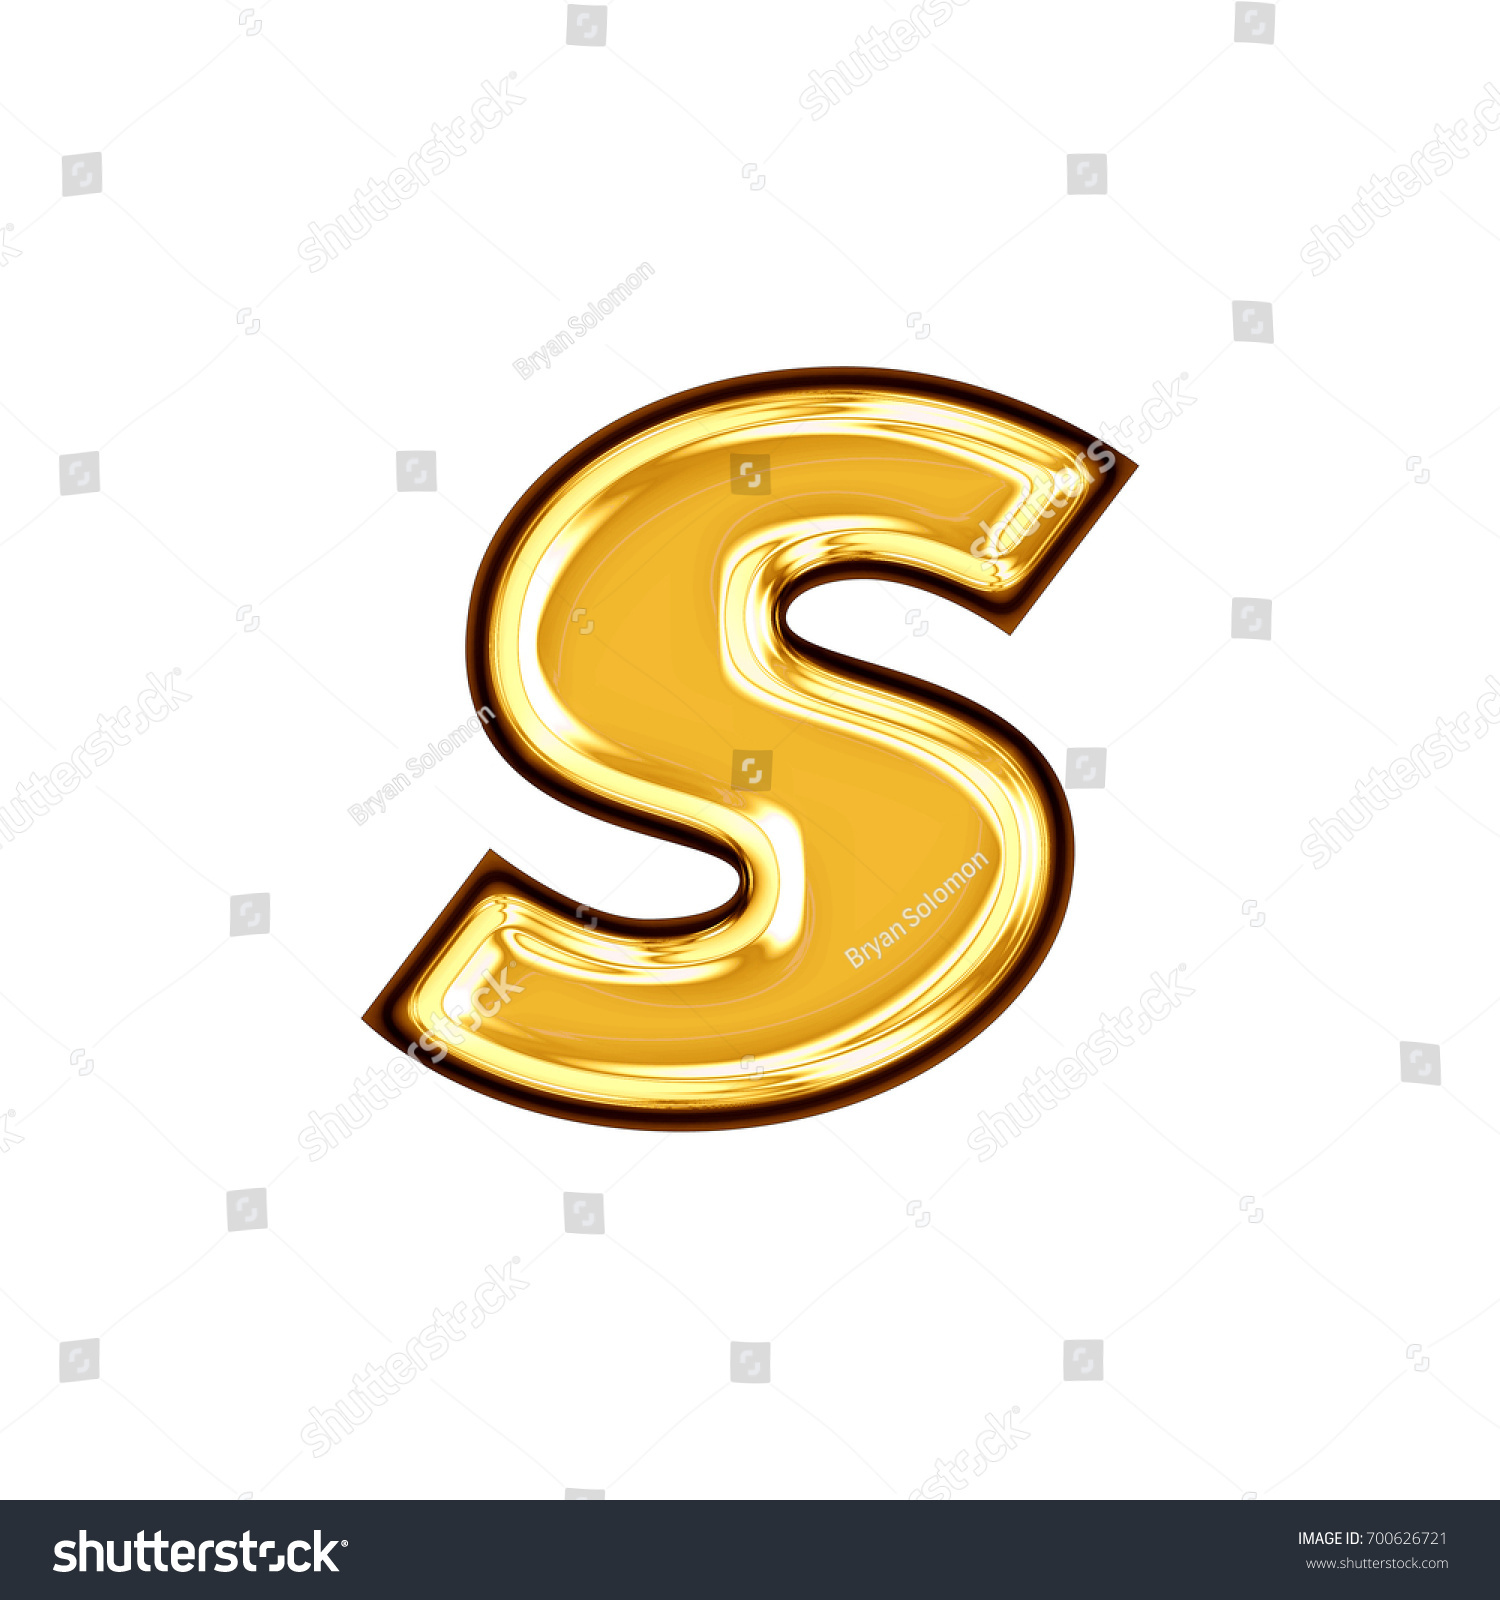 Shiny Golden Yellow Lowercase Small Letter Stock Illustration